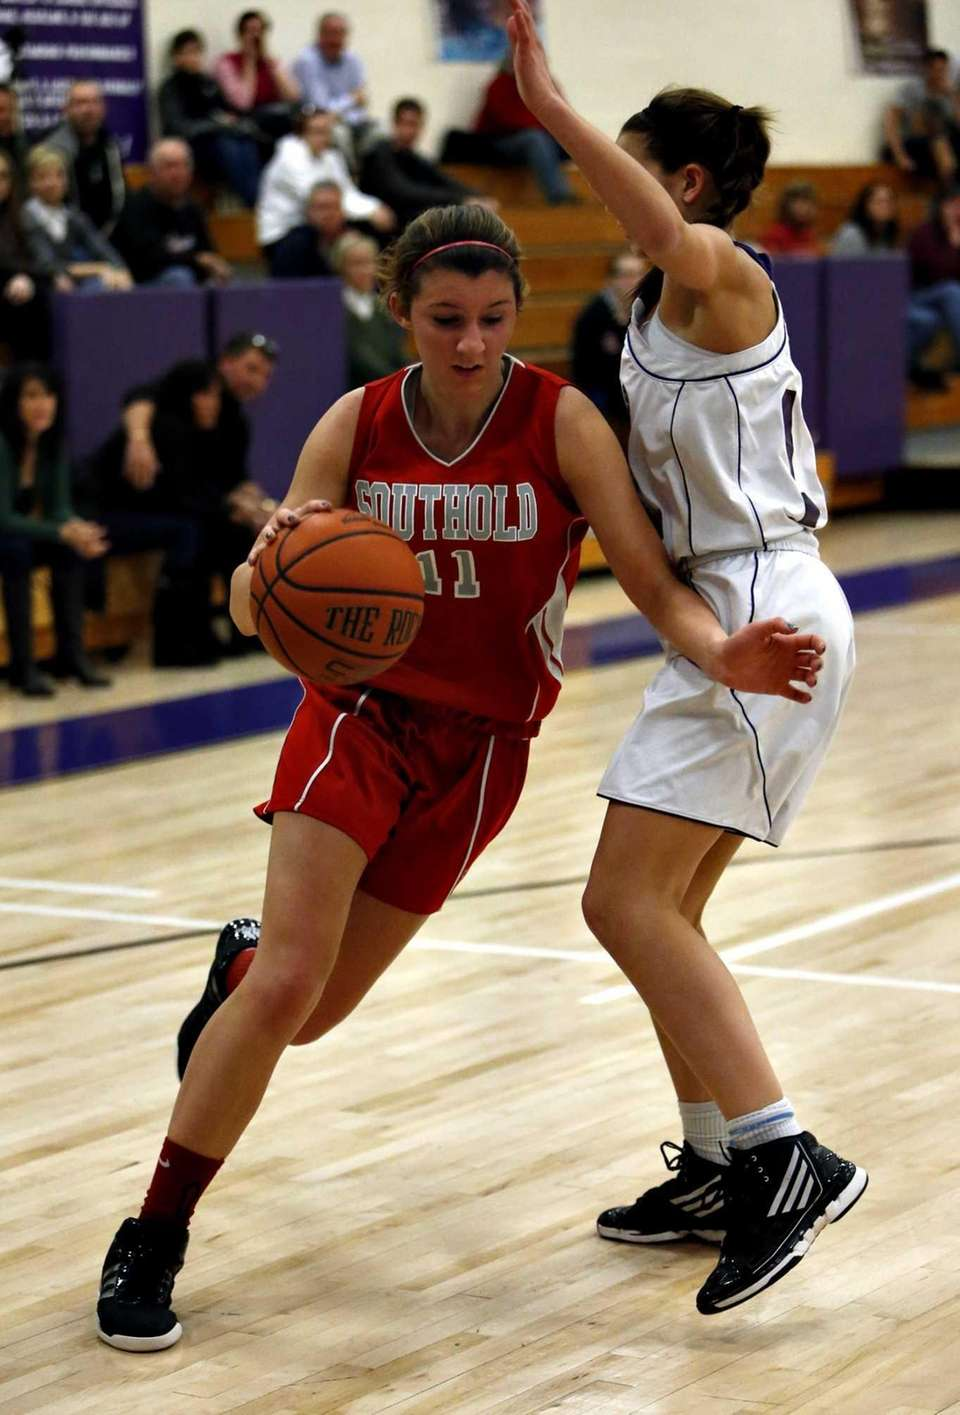 Southold's Nicole Busso drives into the paint against